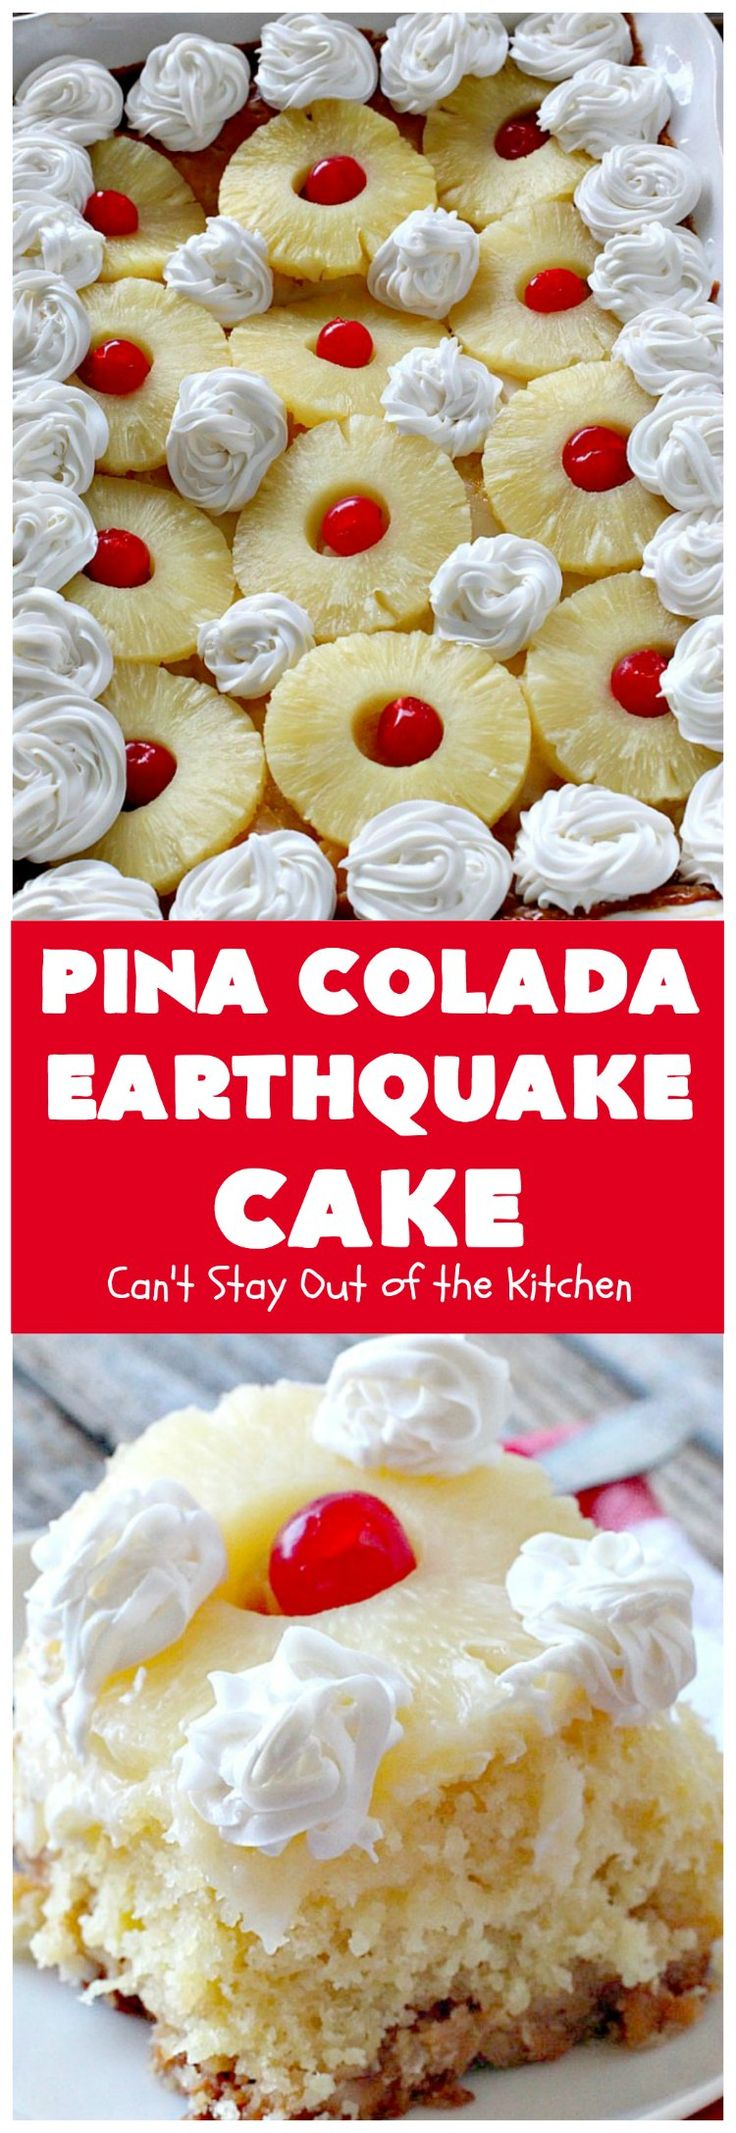 Pina Colada Earthquake Cake   Can't Stay Out of the Kitchen   best #cake ever! This heavenly #dessert is filled with #pineapple, #coconut, macadamia nuts & vanilla chips. #Creamcheese frosting bakes into the cake causing it to crater, erupt & explode in an earthquake! Perfect for #holidays or special occasions.